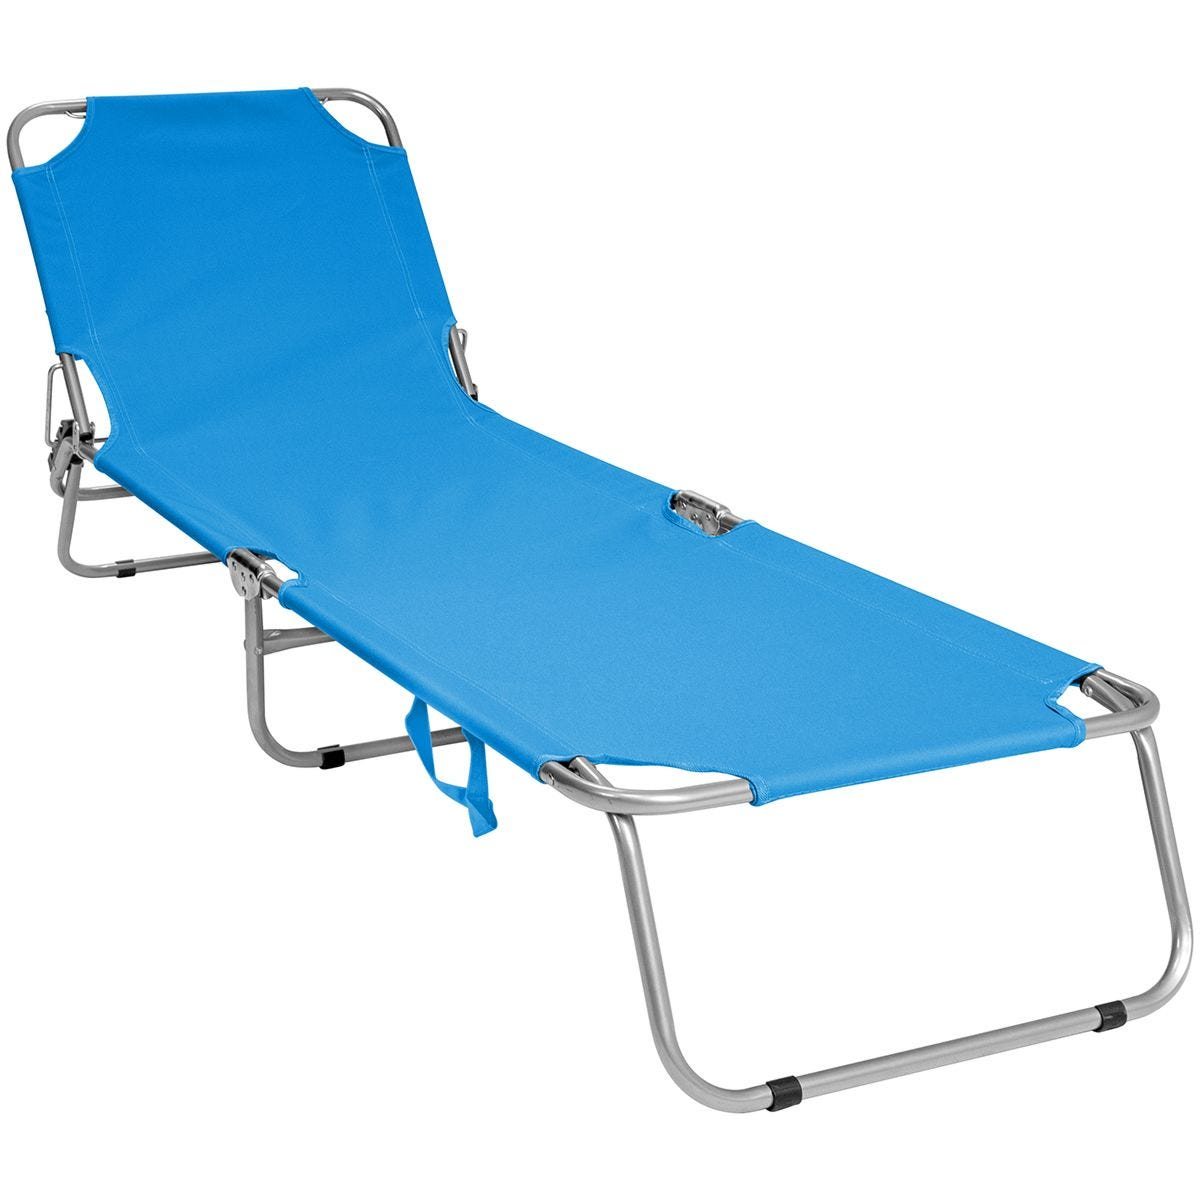 Charles Bentley Foldable Reclining Sunlounger  - Teal